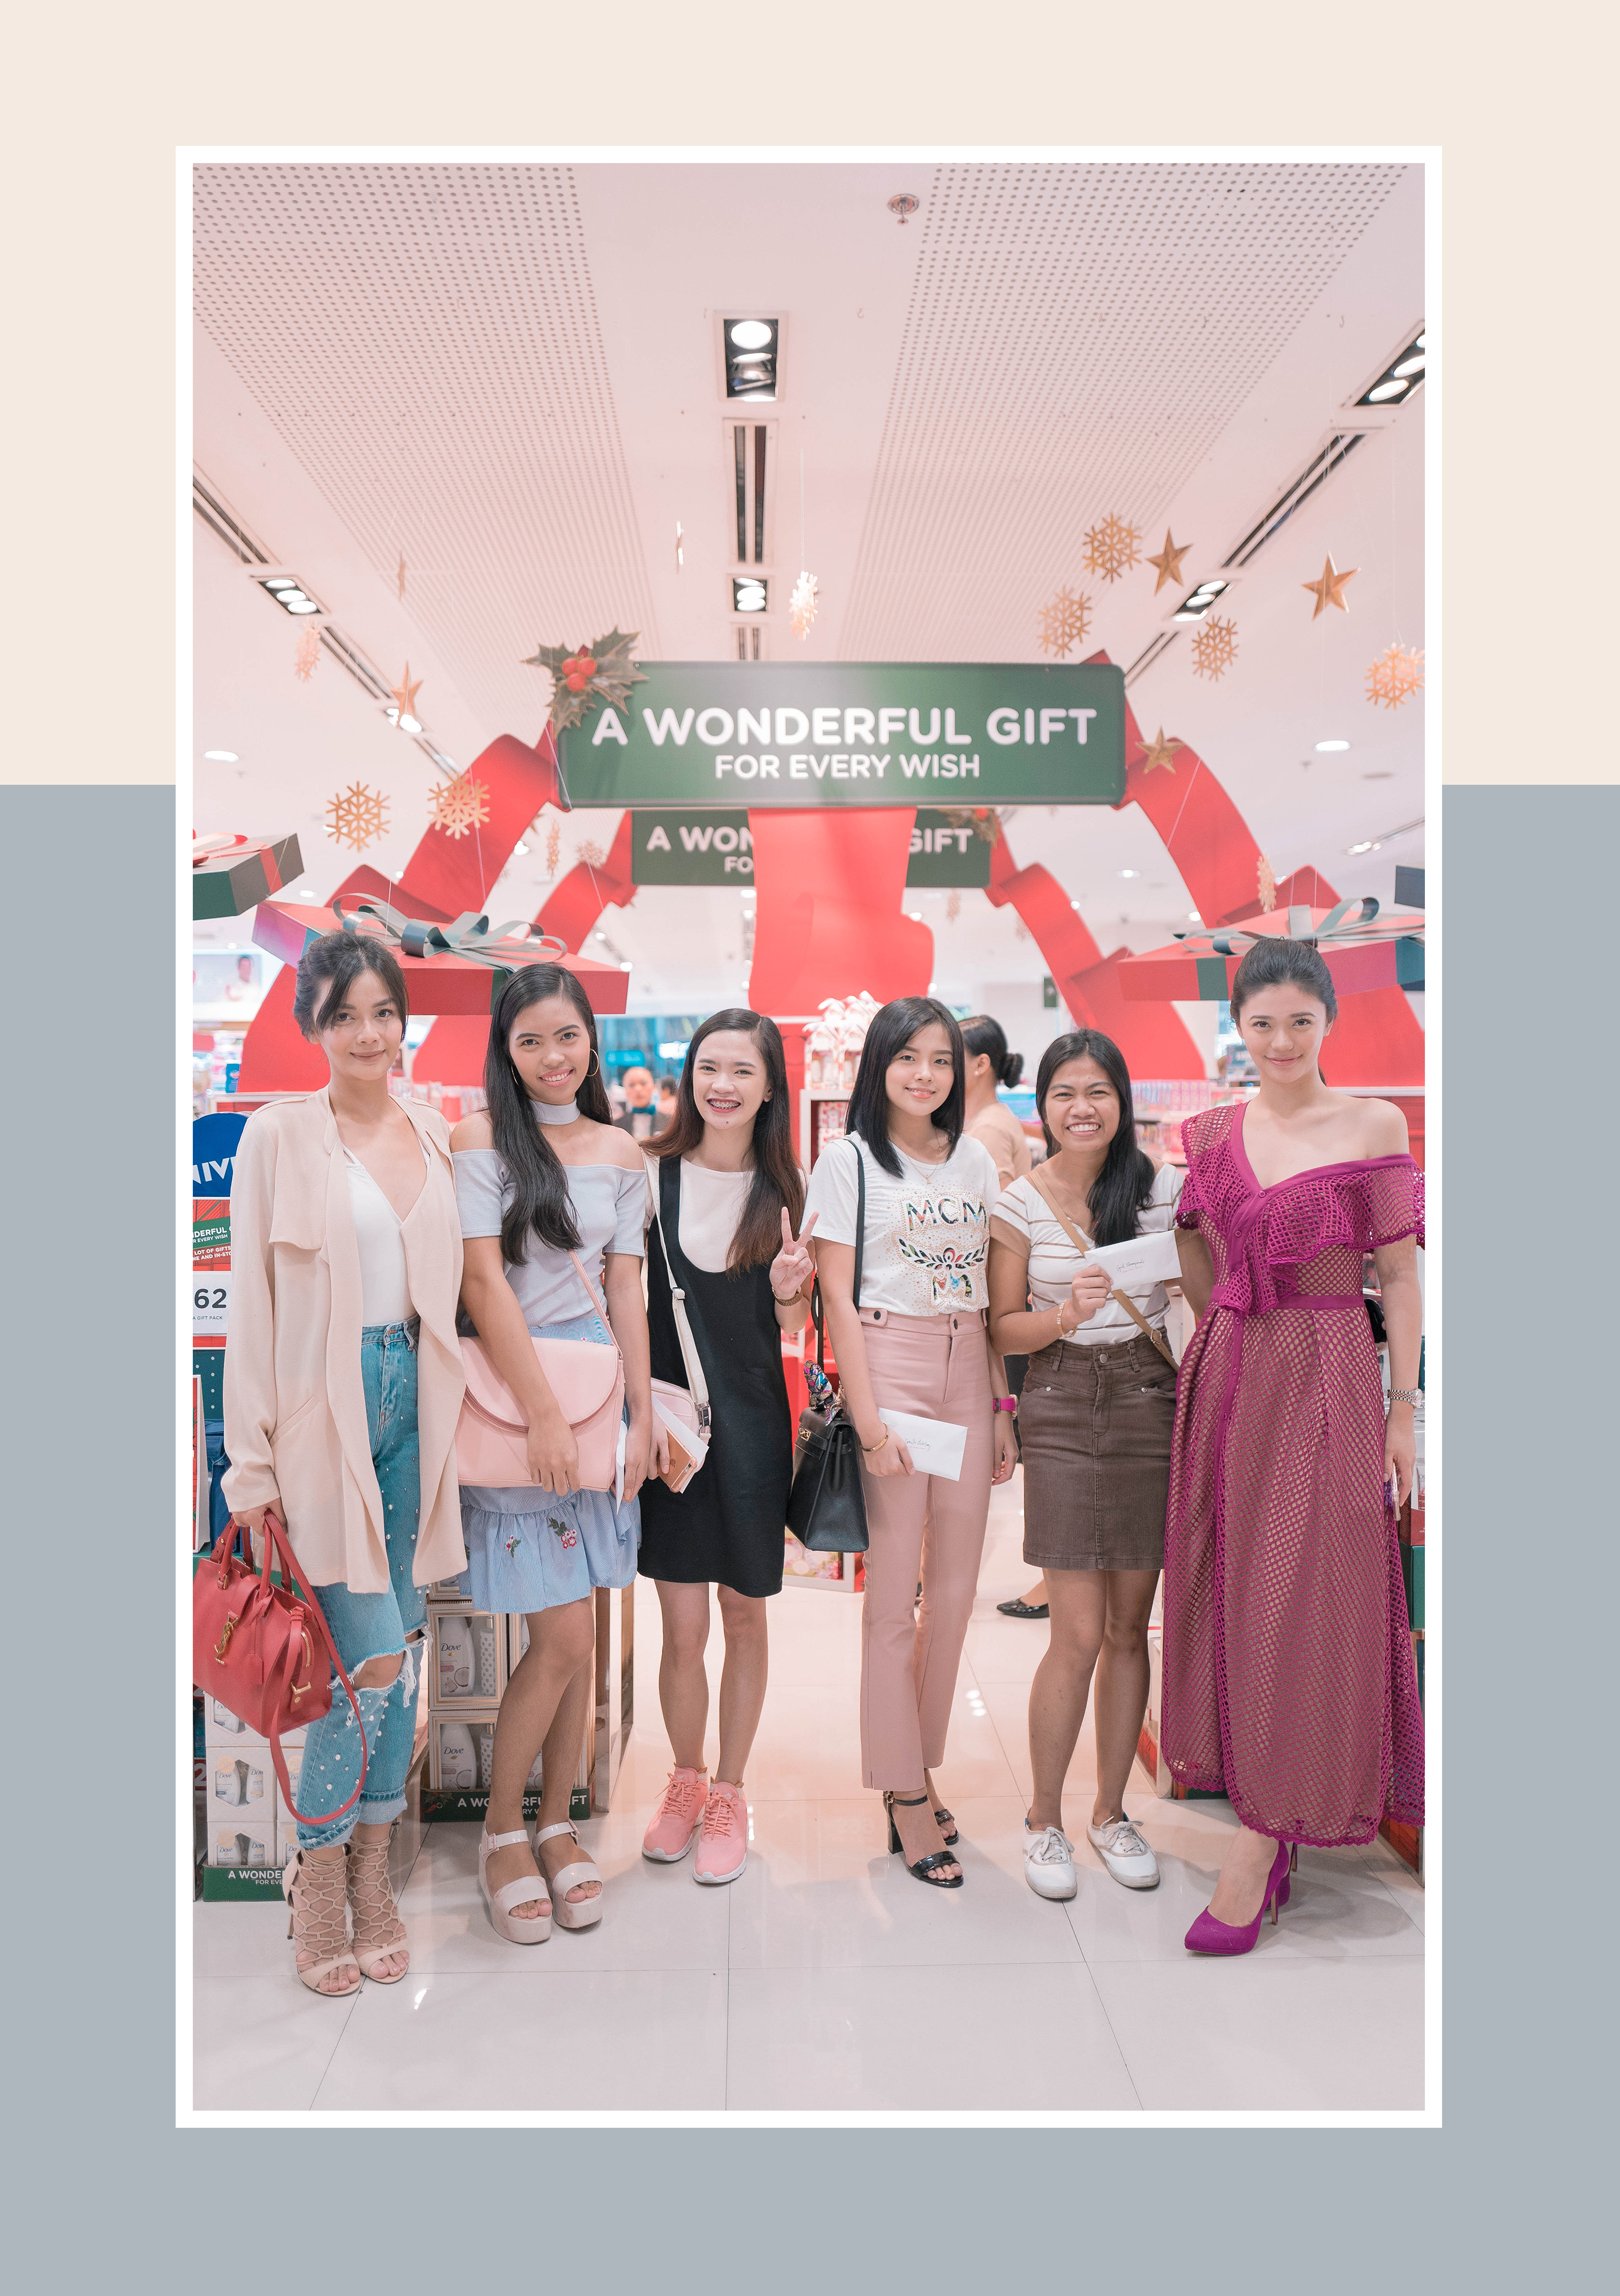 3. SM Accessories Watsons P1